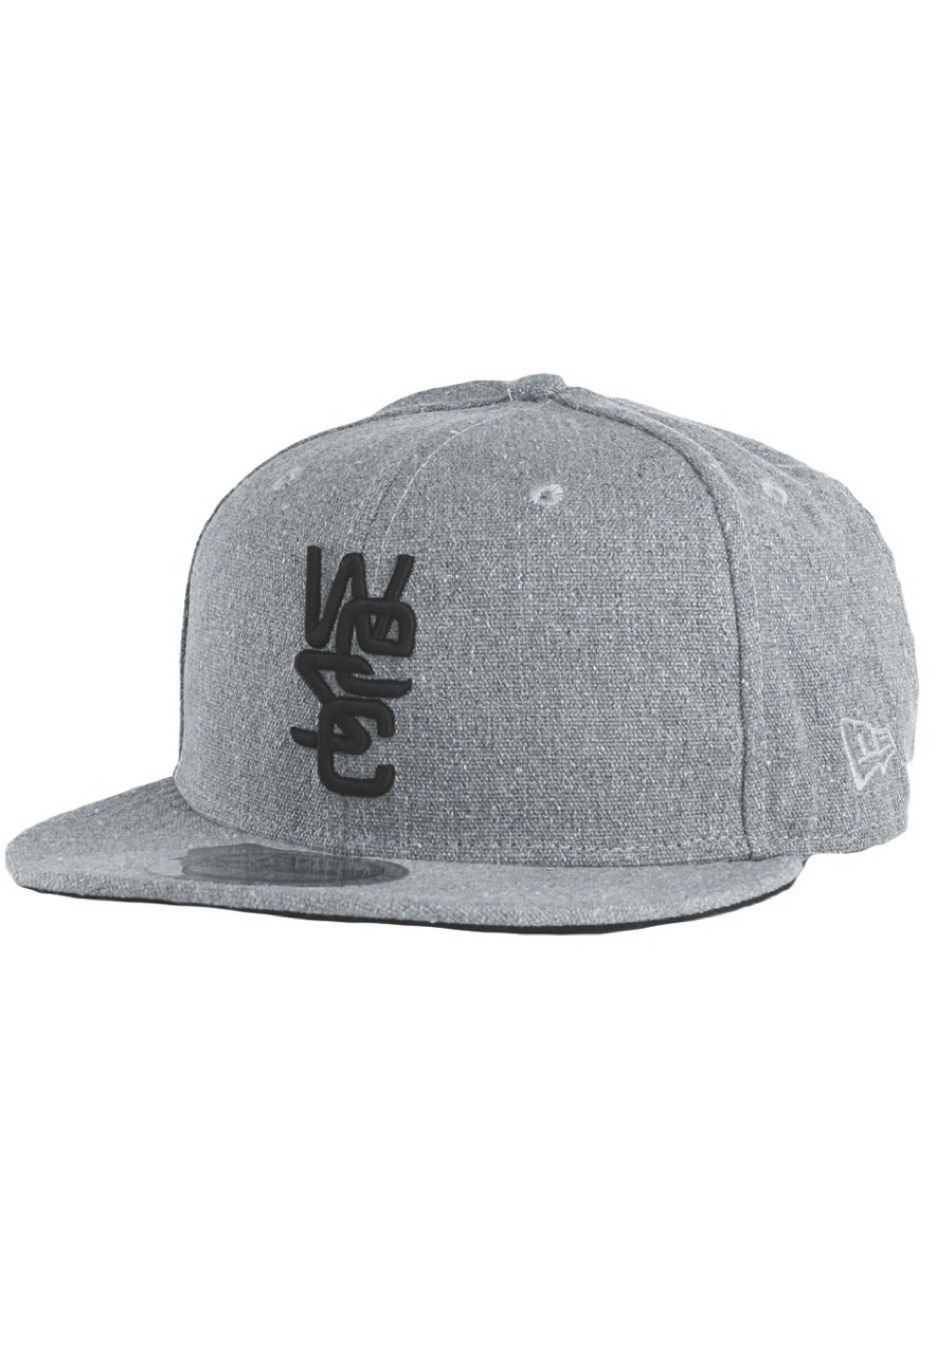 a30a80c40c4 Wesc - 59Fifty Recycled Smoked Pearl - Lippis - Impericon.com FI